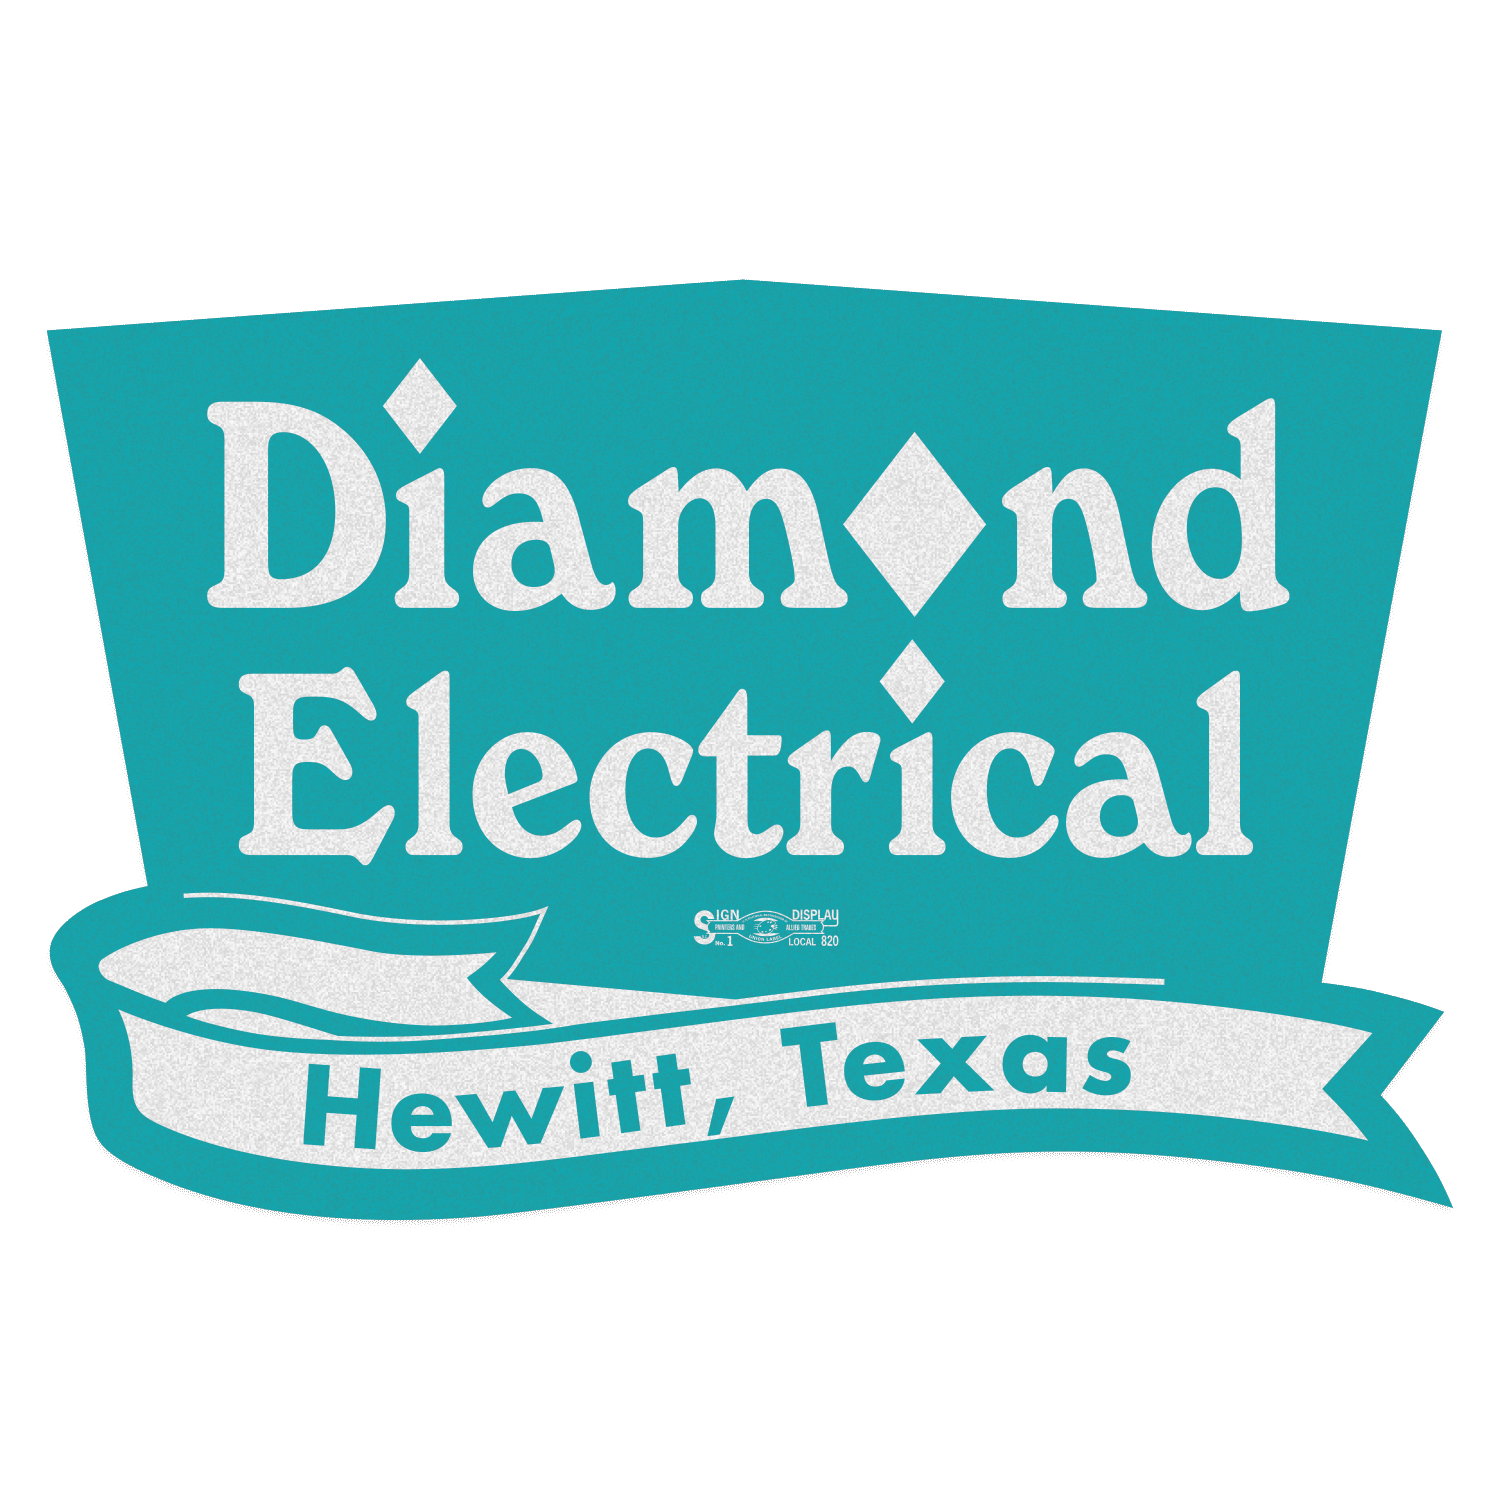 https://www.sswprinting.com/images/products_gallery_images/13804_Diamond-Electrical_hi-res.png